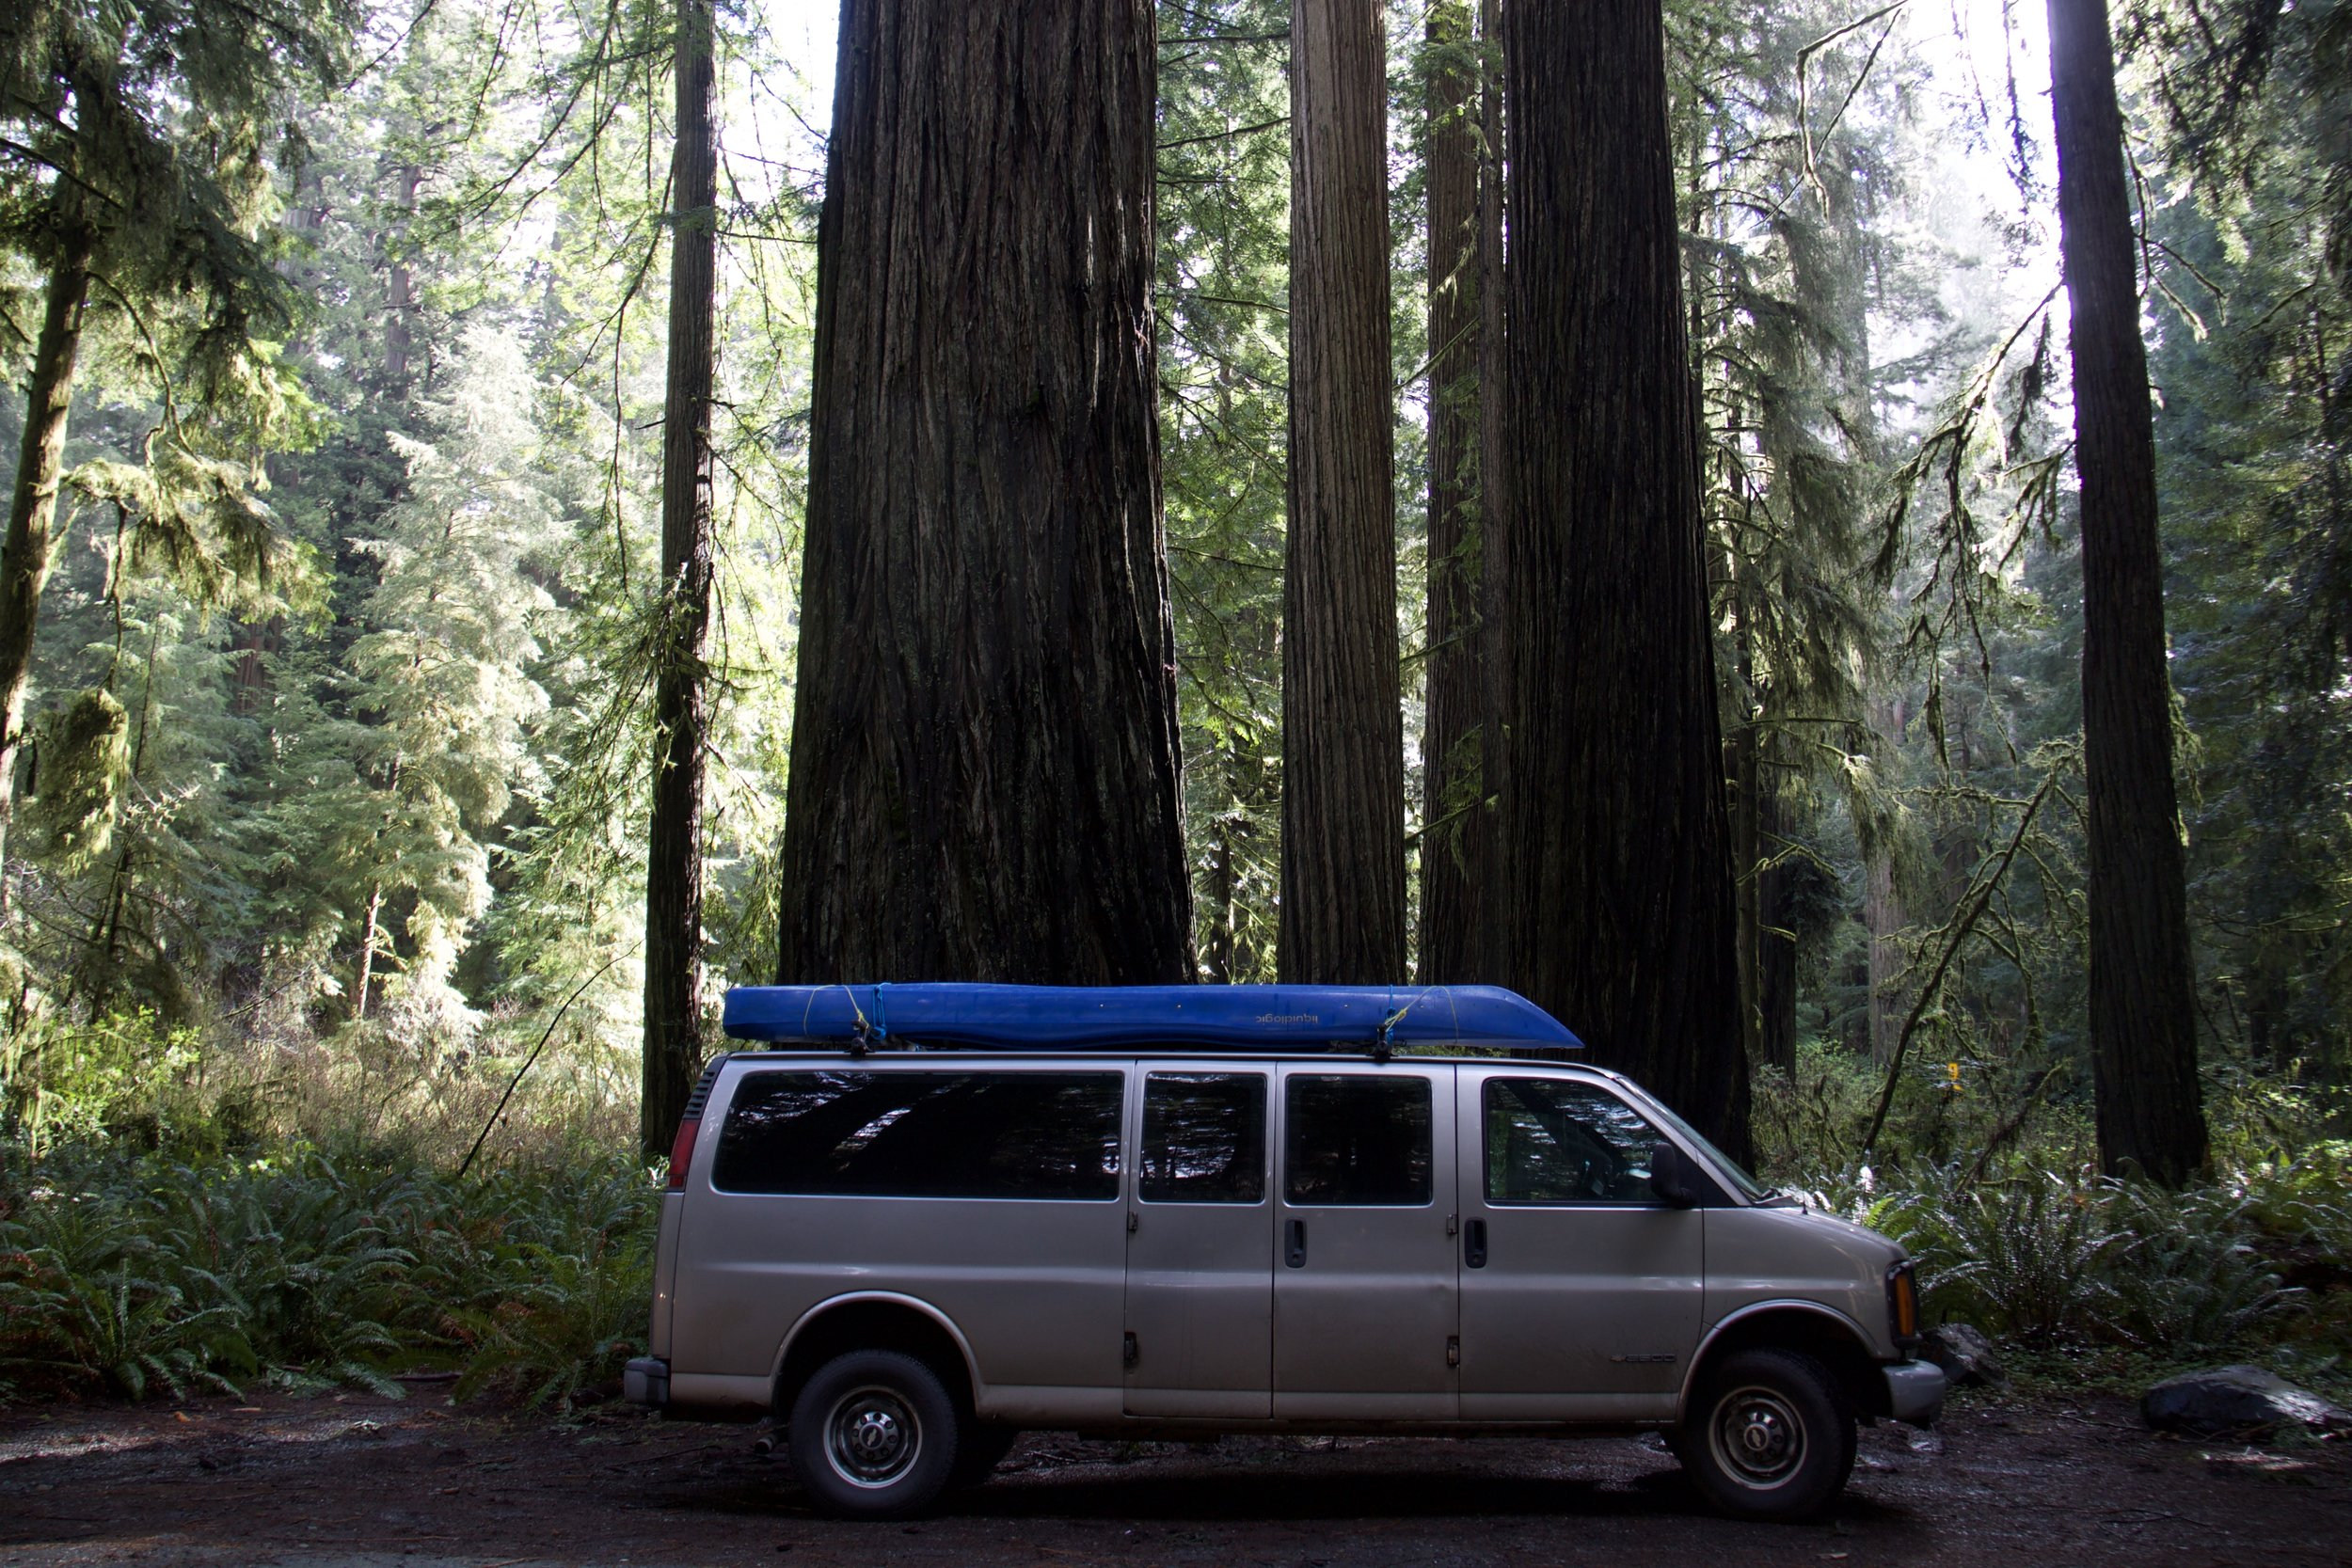 You know the trees are big, when they make a 15 seater passenger van look small! :-P